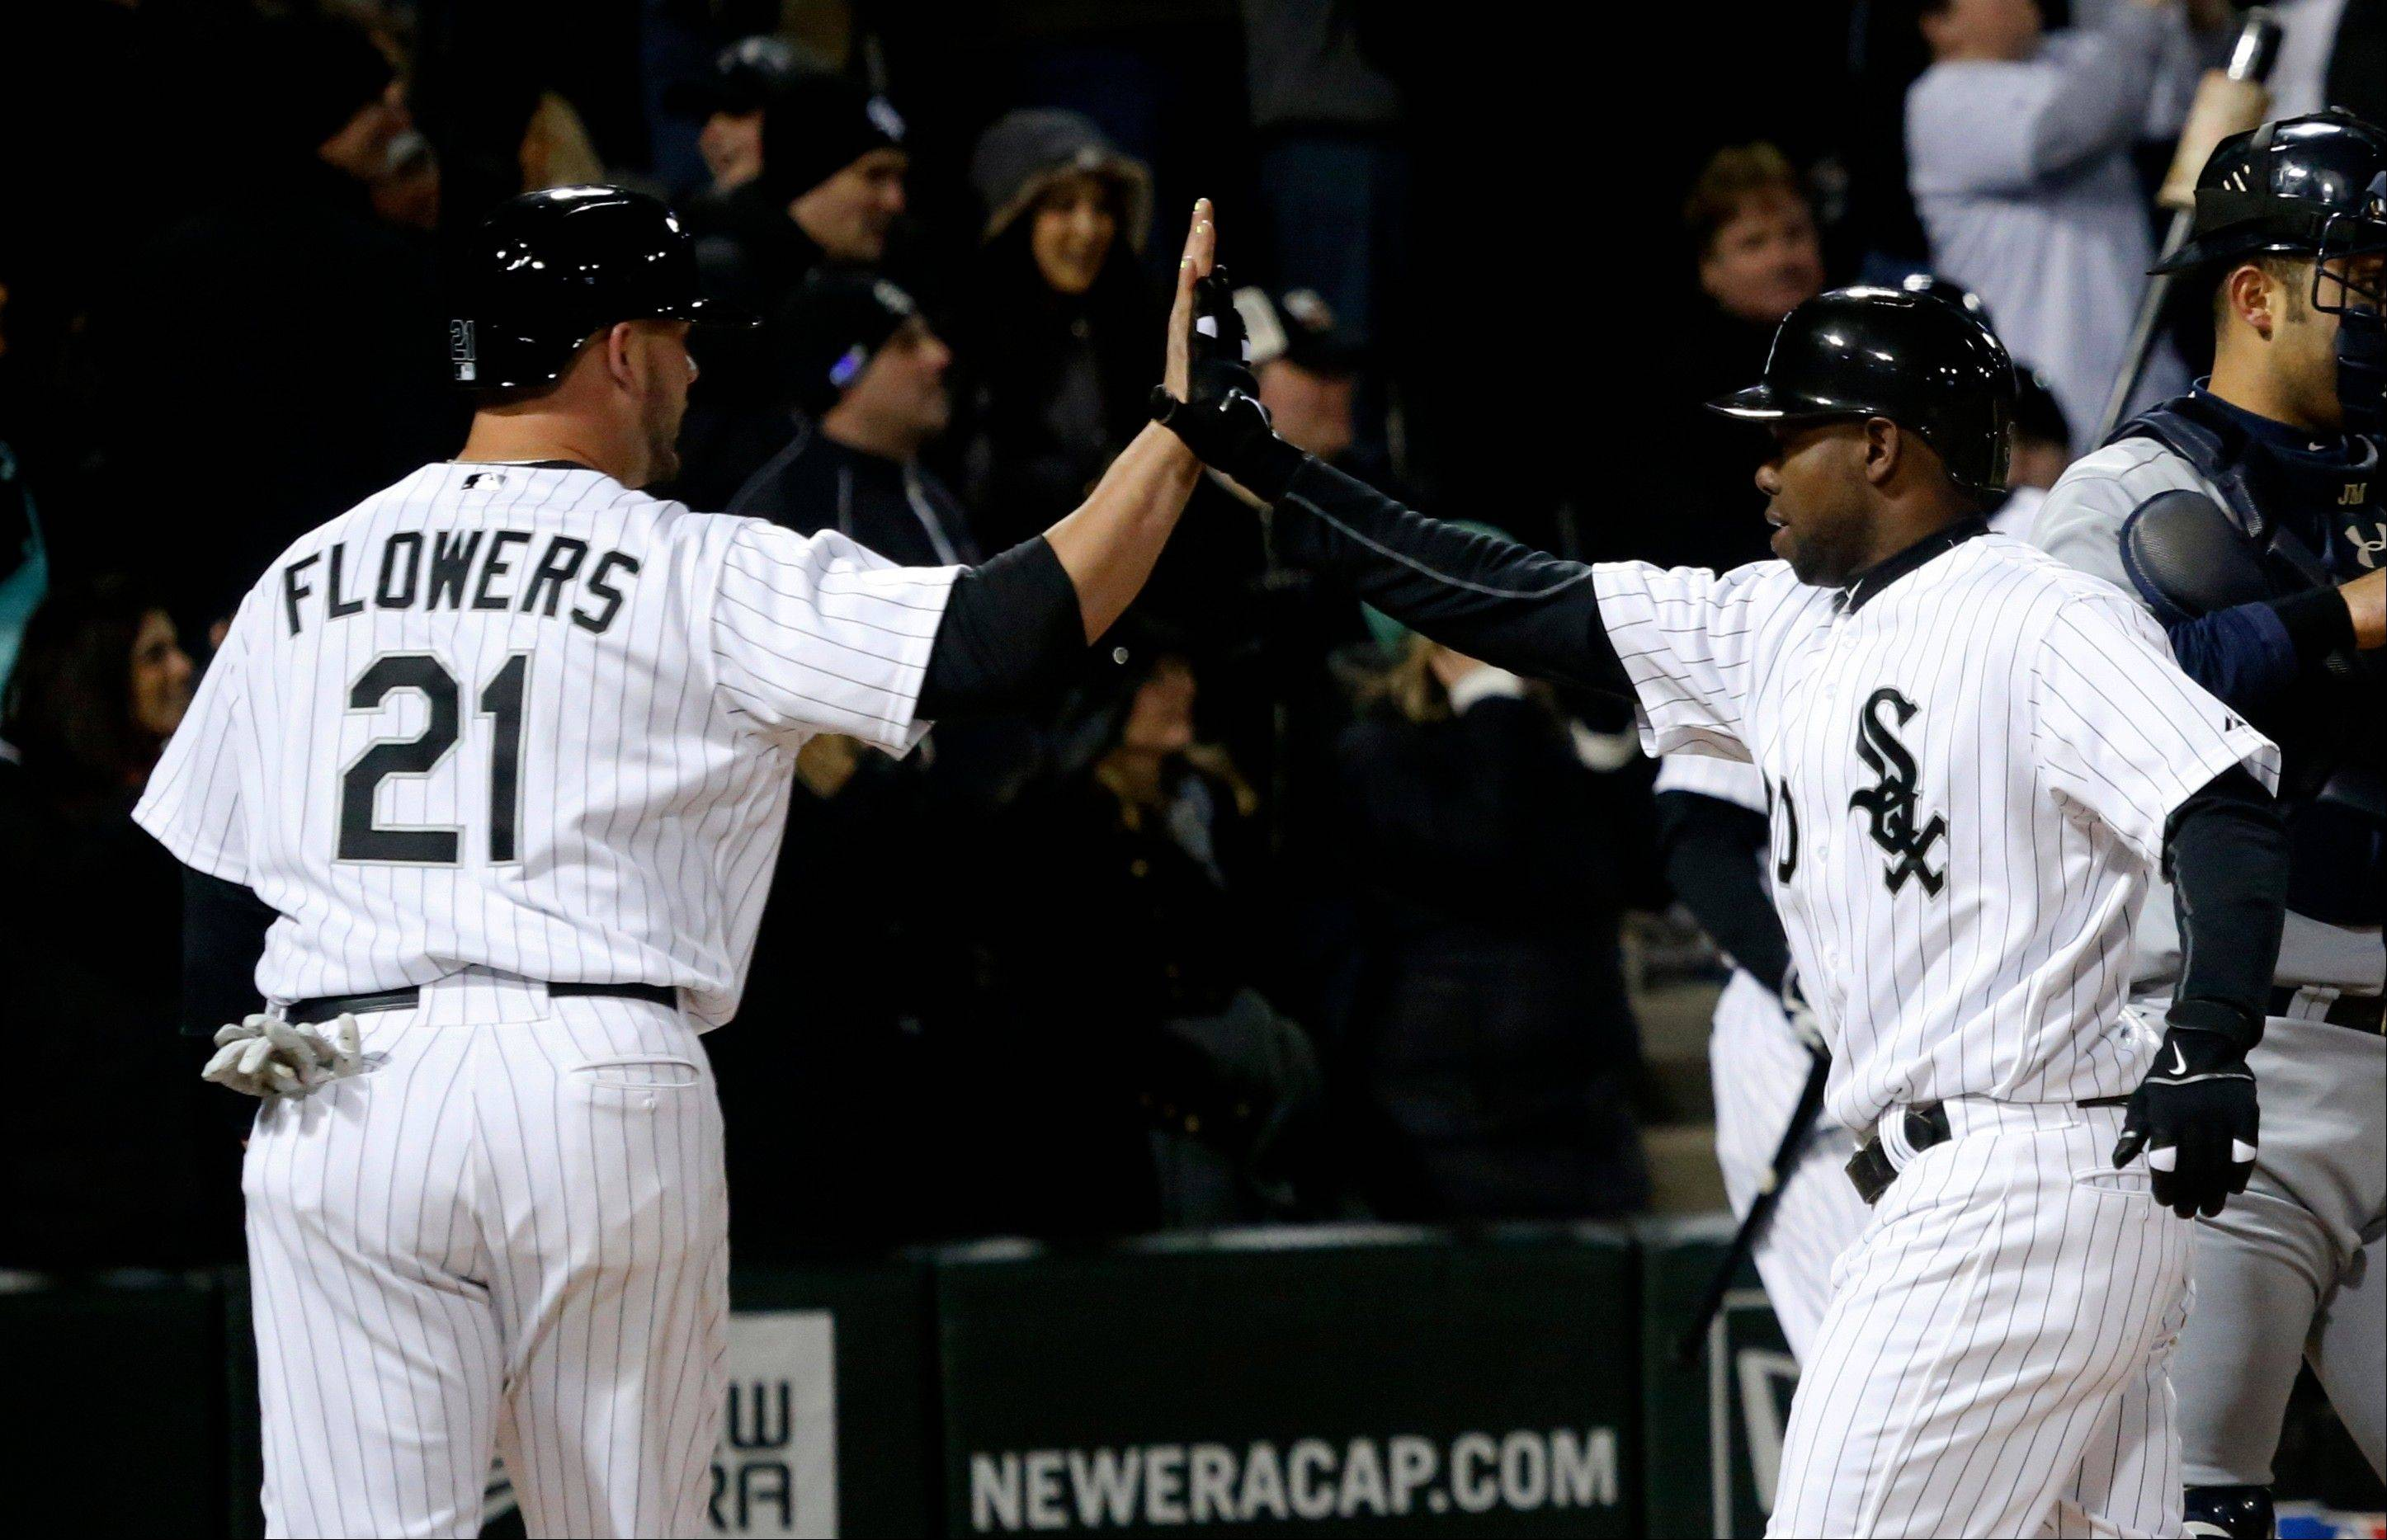 Tyler Flowers (21) greets teammate Alejandro De Aza at home after they both scored on De Aza's home run off Seattle Mariners starting pitcher Blake Beavan during the fifth inning of a baseball game on Friday, April 5, 2013, in Chicago.